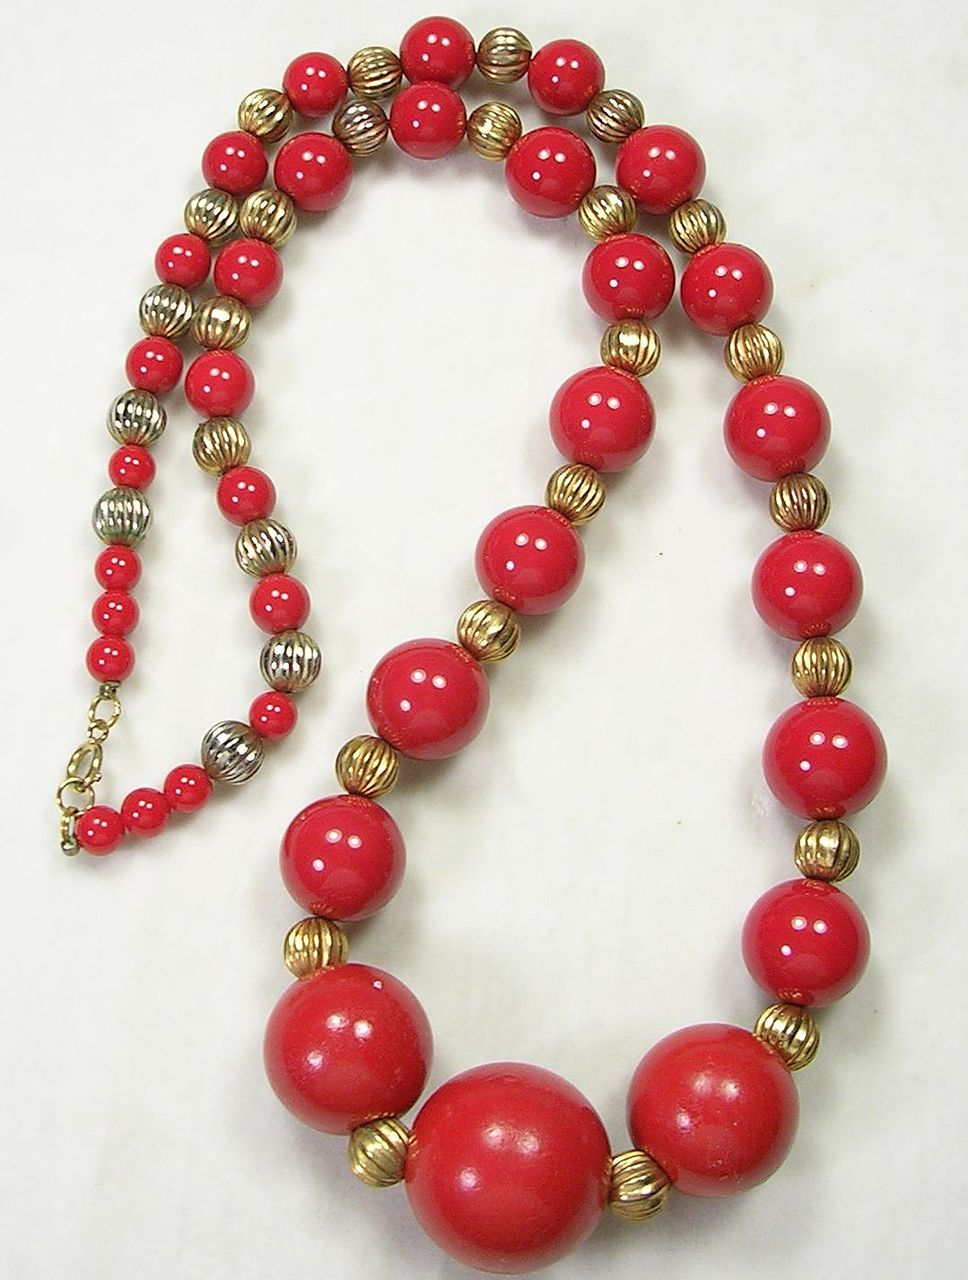 Vintage Large and Long Red Wood and Glass Beaded Necklace with Gold  Tone Beads